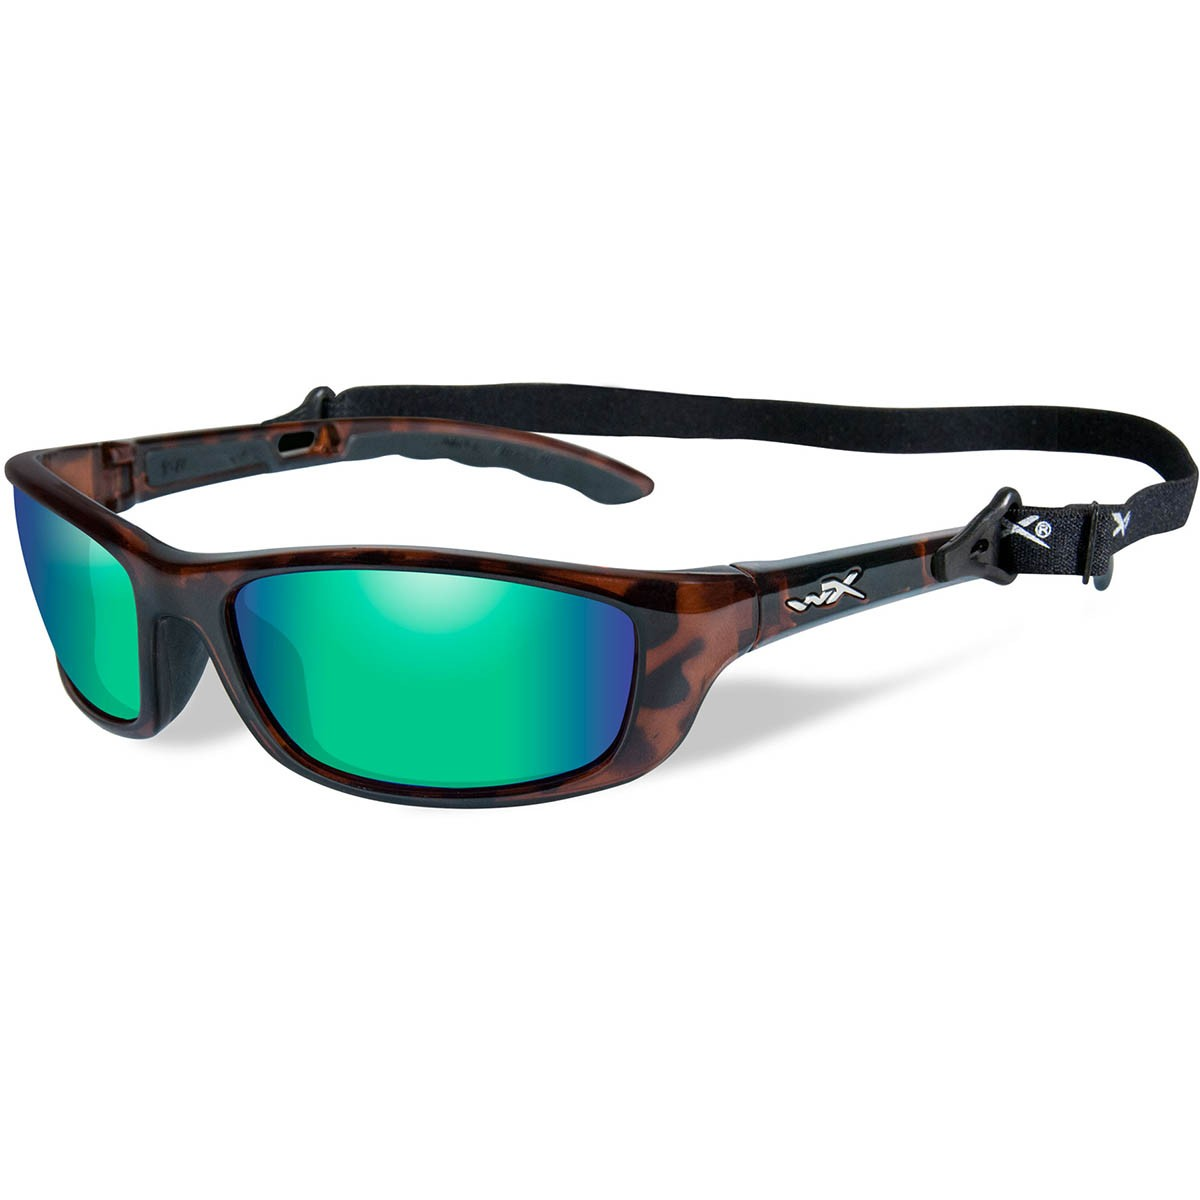 3af7fa2fa0 Wiley X P-17 Sunglasses - Gloss Demi Frame - Polarized Emerald Mirror Lens.  WX-P-17KA. WX-P-17KA